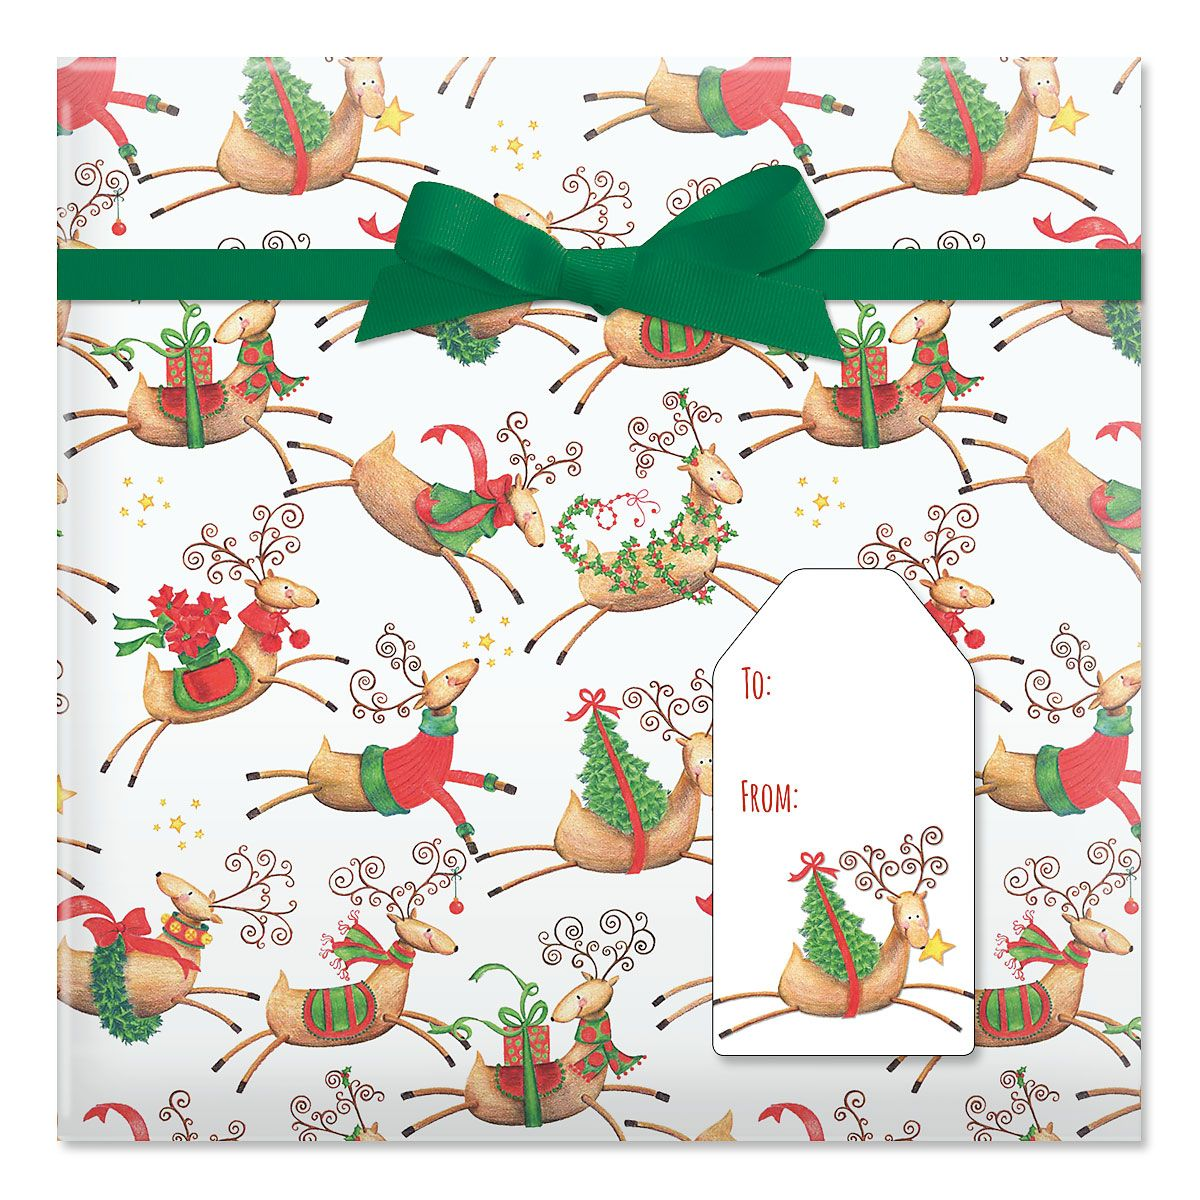 Tiny Reindeer Jumbo Rolled Gift Wrap and Labels